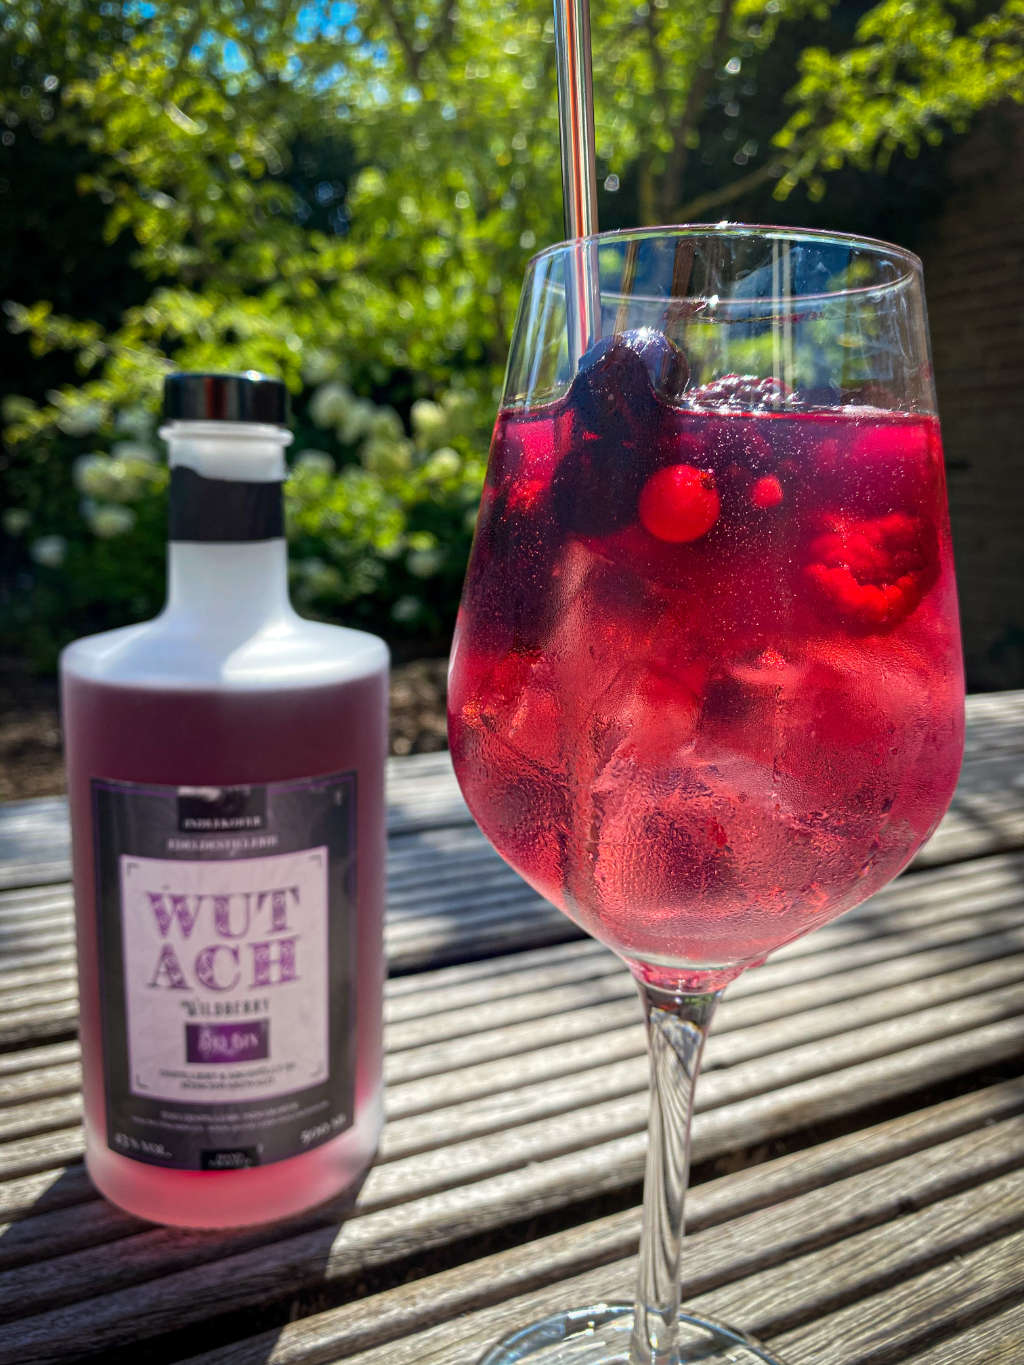 The photo showing a glas with red gin and tonic in a glas with ice cubes and wild berries. In the back a bottle of the gin.